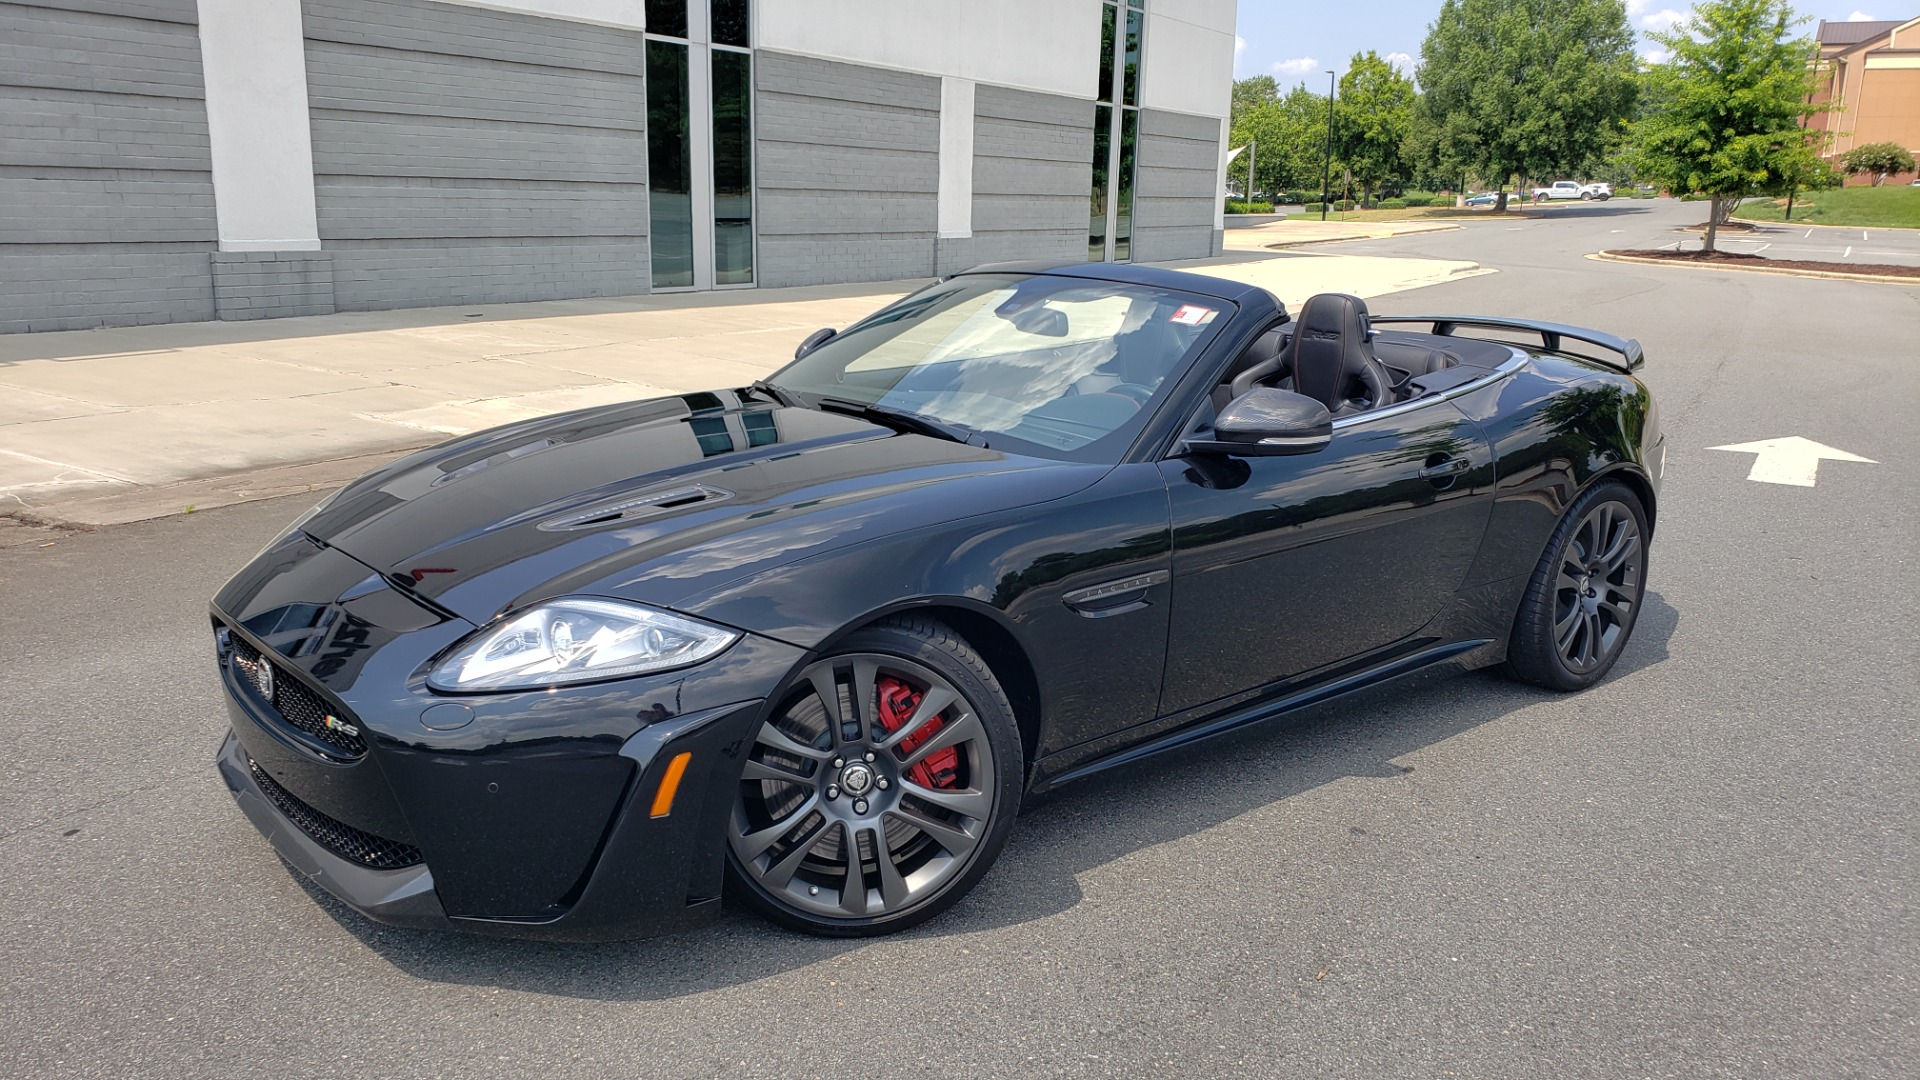 Used 2013 Jaguar XK R-S CONVERTIBLE / SC 5.0L V8 (550HP) / ZF 6-SPD AUTO / NAV / REARVIEW for sale $74,995 at Formula Imports in Charlotte NC 28227 3